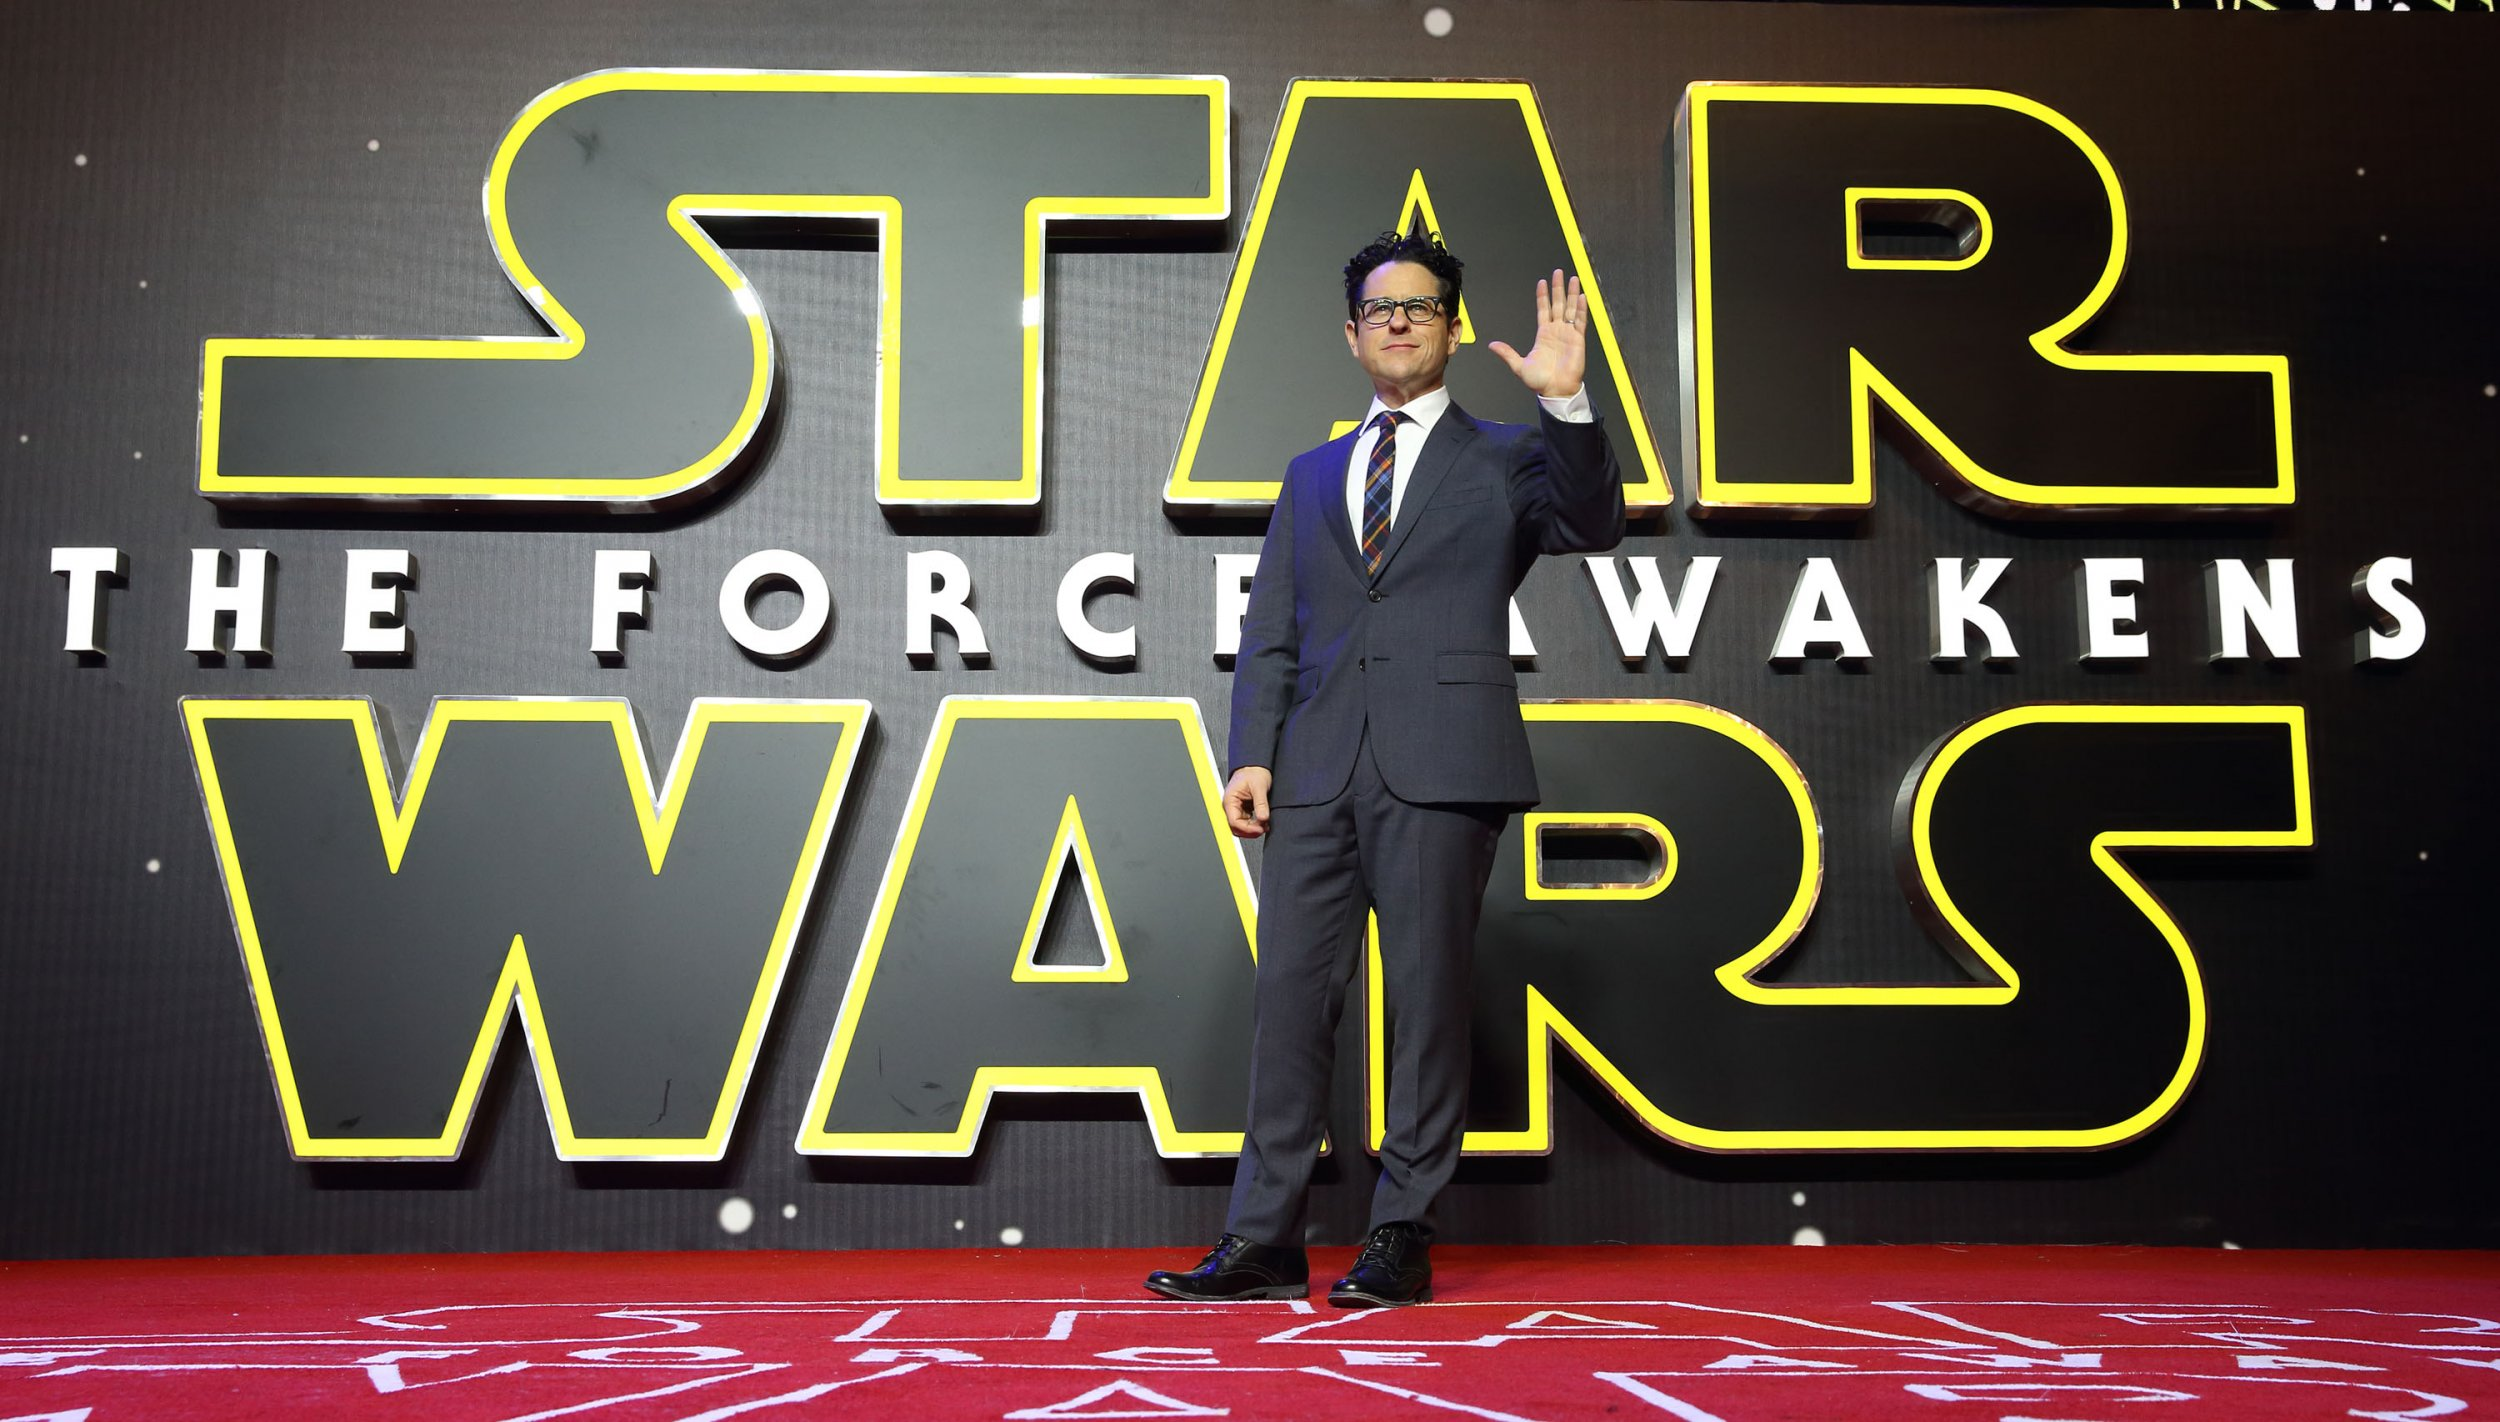 J.J. Abrams to direct Star Wars